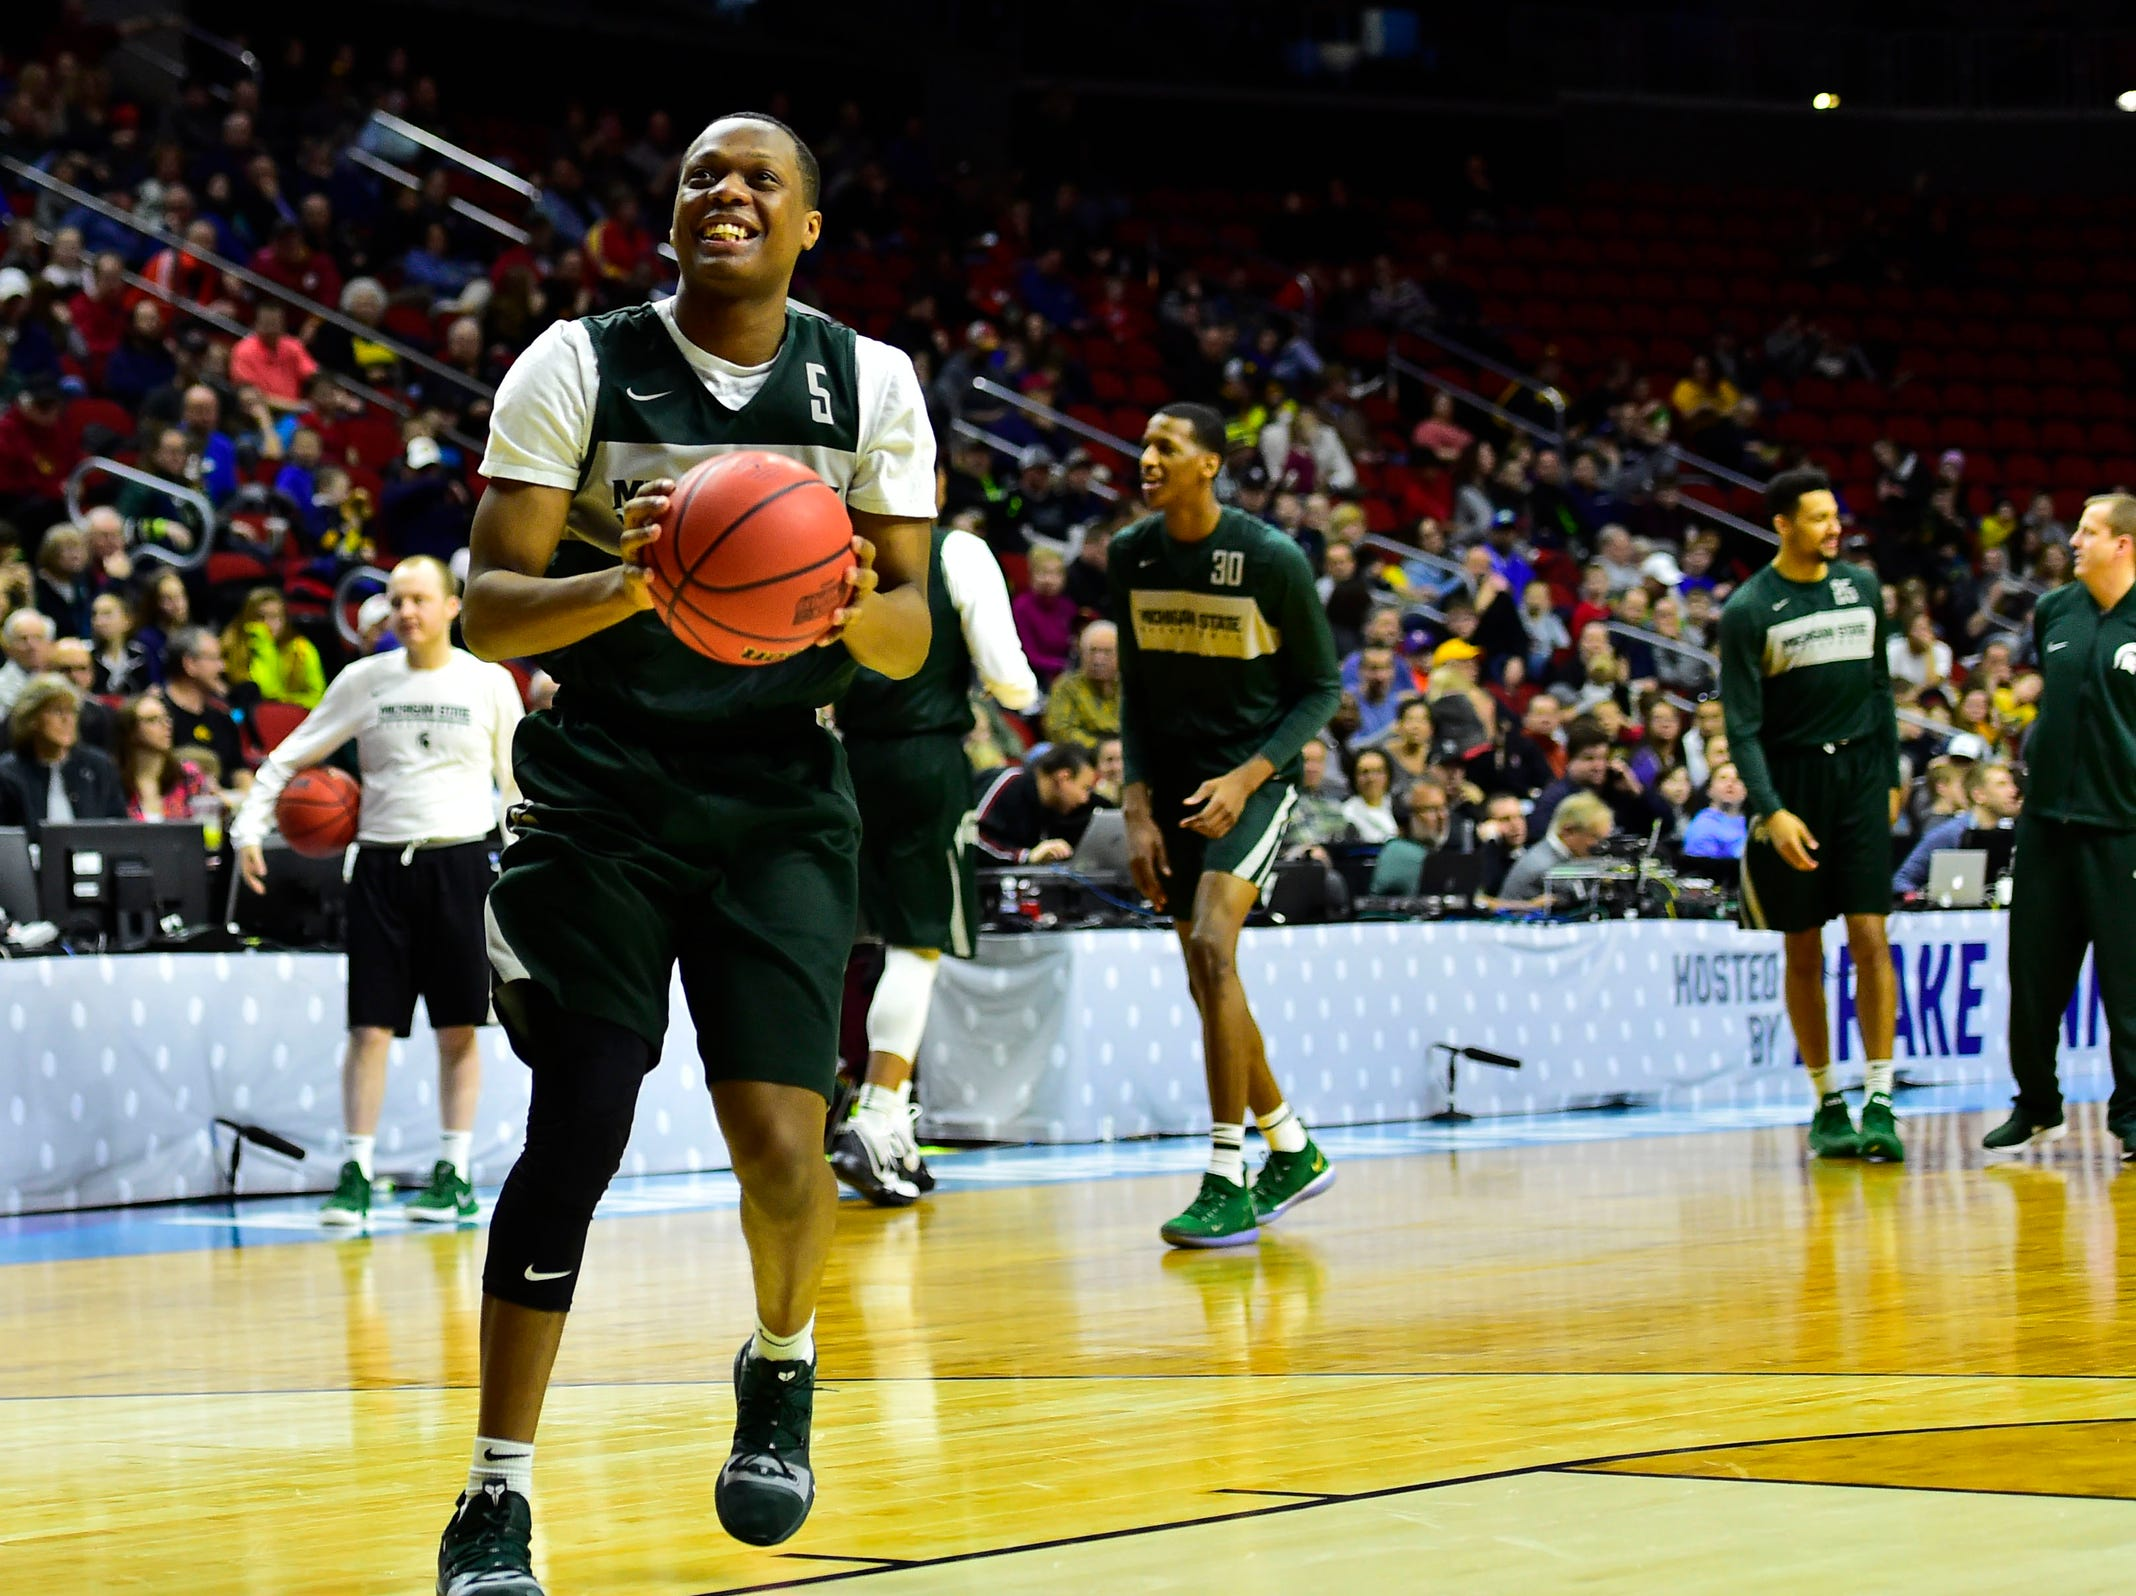 Mar 20, 2019; Des Moines, IA, USA; Michigan State Spartans guard Cassius Winston (5) shoots the ball during practice before the first round of the 2019 NCAA Tournament at Wells Fargo Arena. Mandatory Credit: Steven Branscombe-USA TODAY Sports